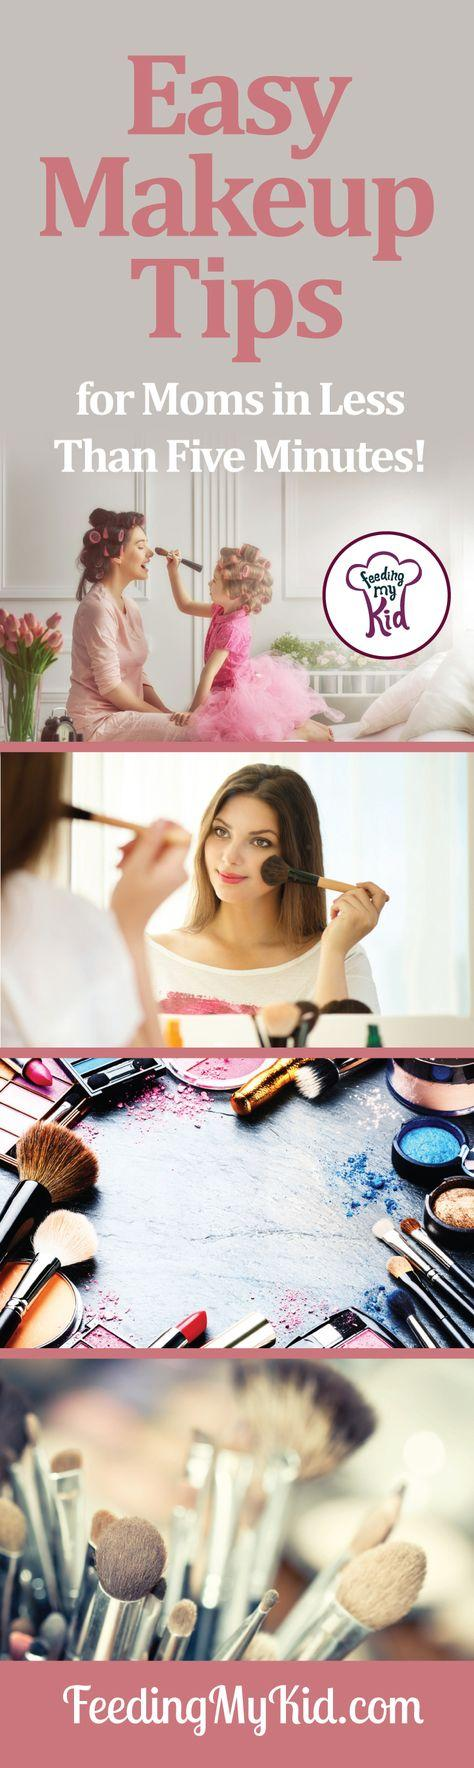 Easy makeup tricks. You'll be done with your makeup in less than five minutes. Moms will look and feel refreshed with these easy tips!